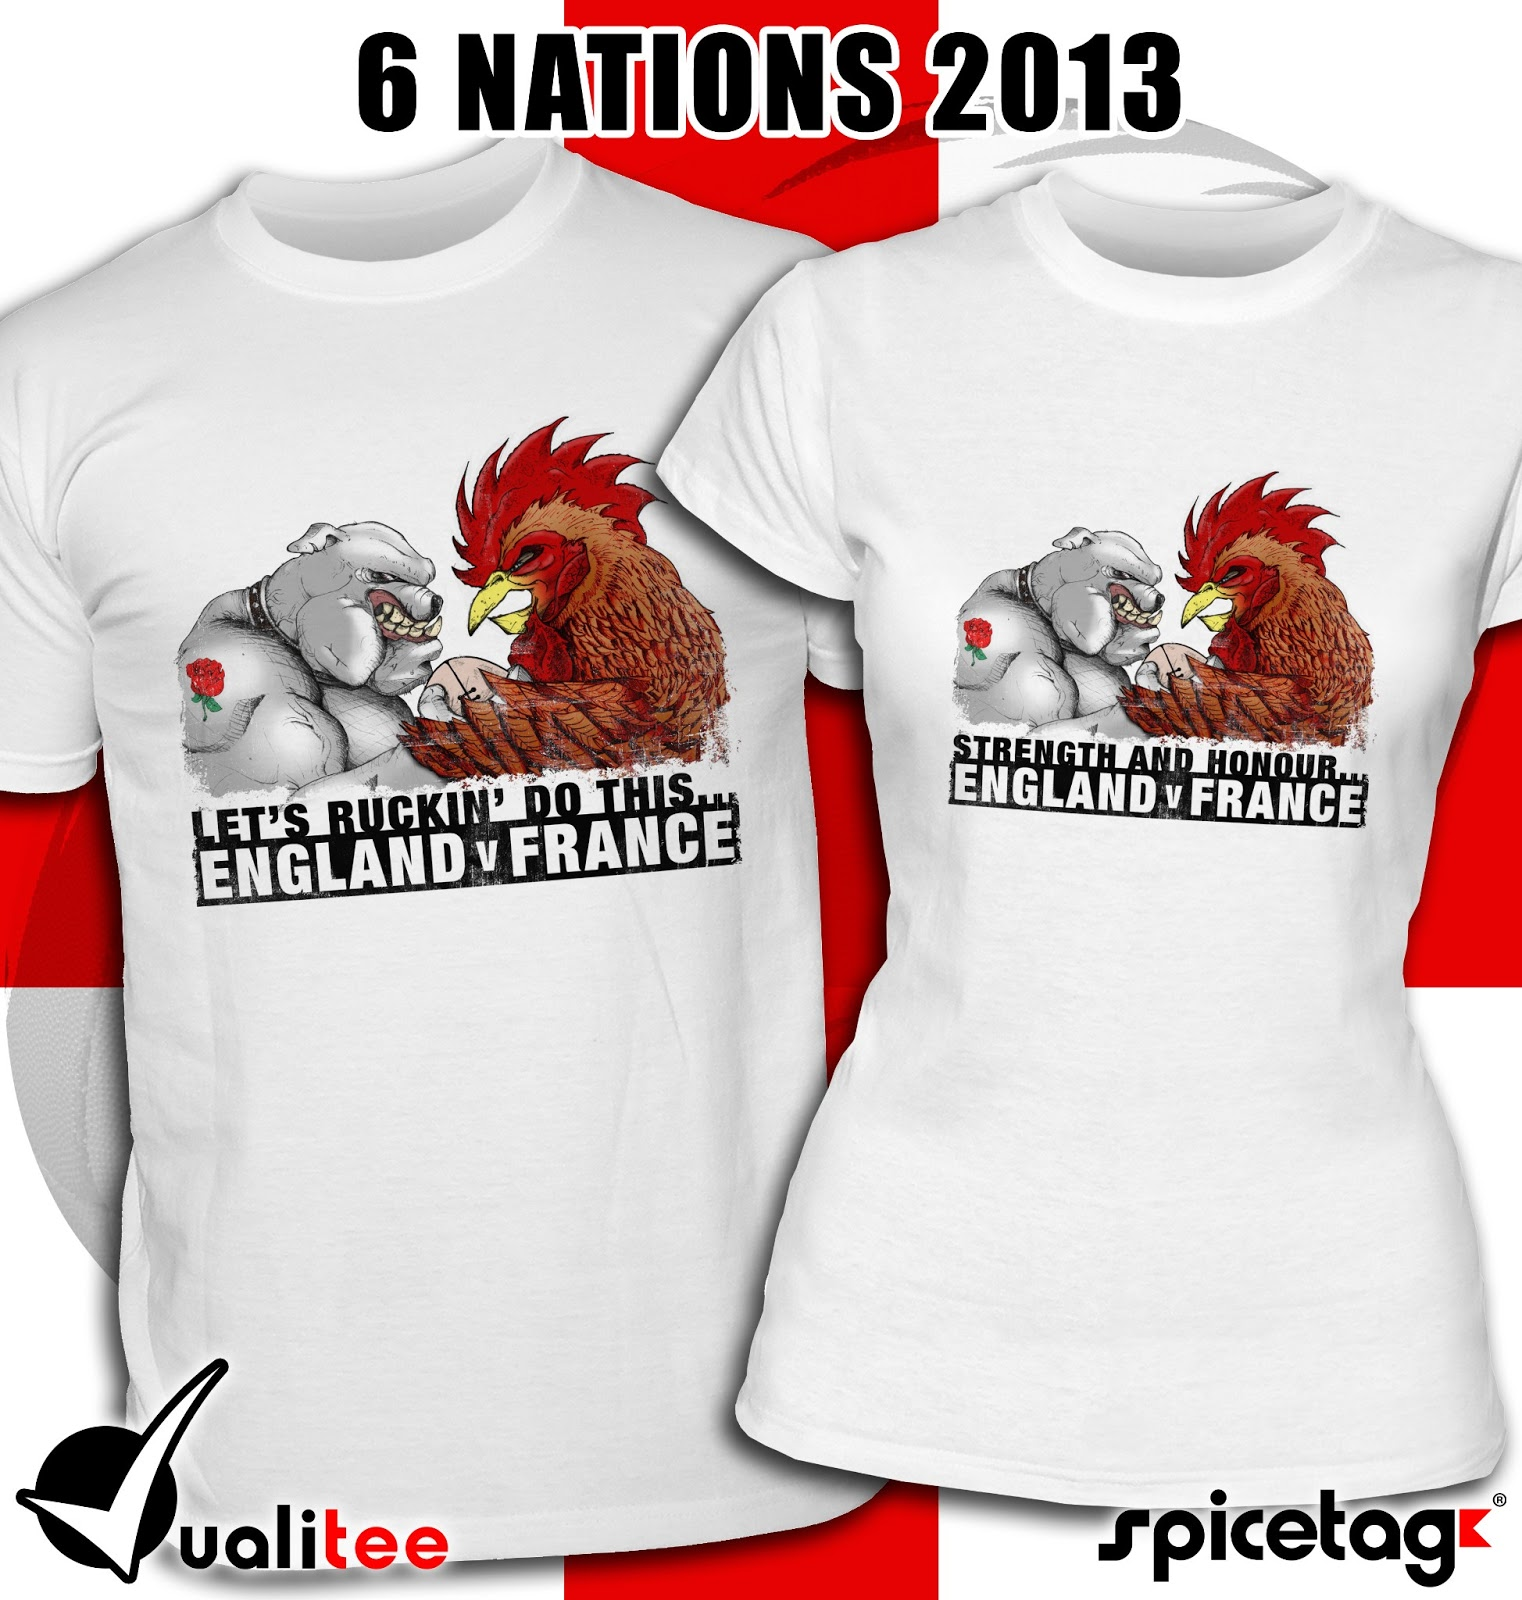 Rugby Shirt For Dog: The Spicetag Blog: Latest Six Nations Rugby T-shirts